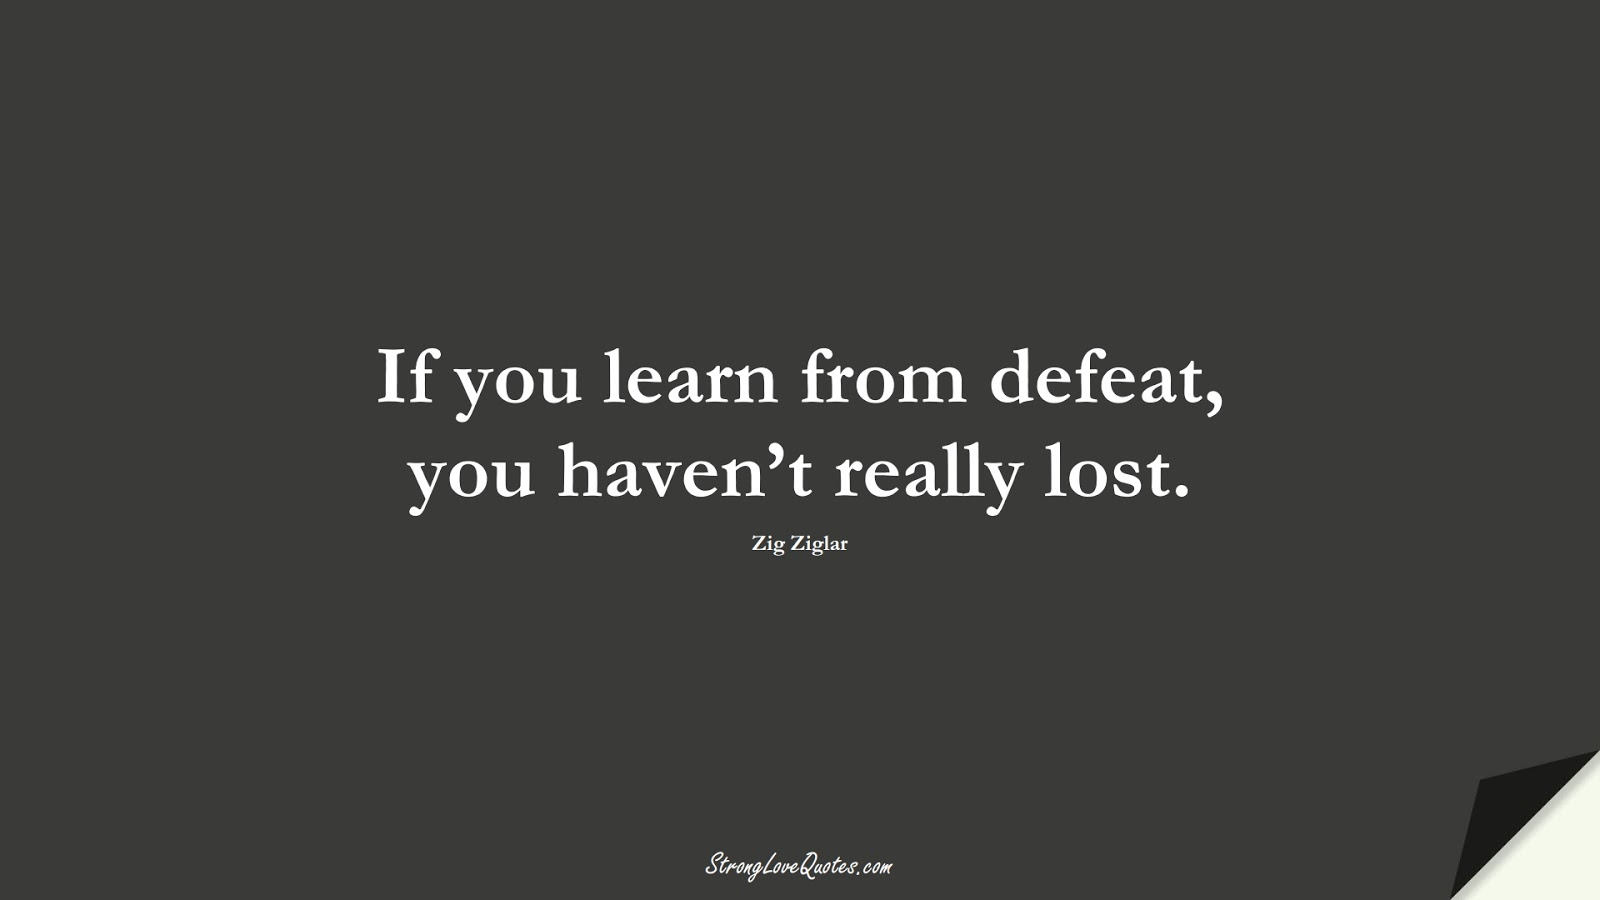 If you learn from defeat, you haven't really lost. (Zig Ziglar);  #LearningQuotes